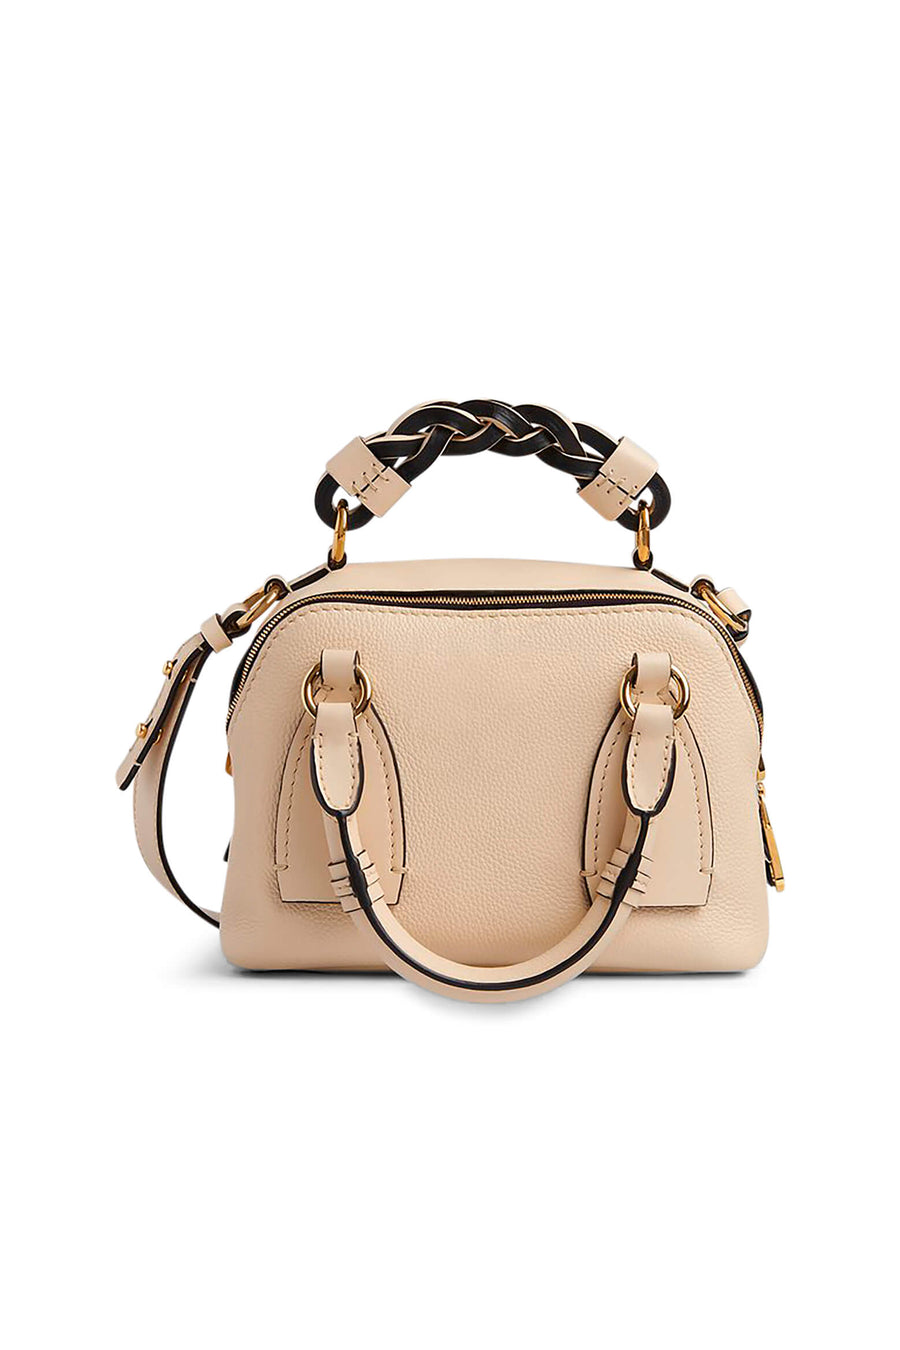 Chloe Daria Small Bag in Sweet Beige from The New Trend